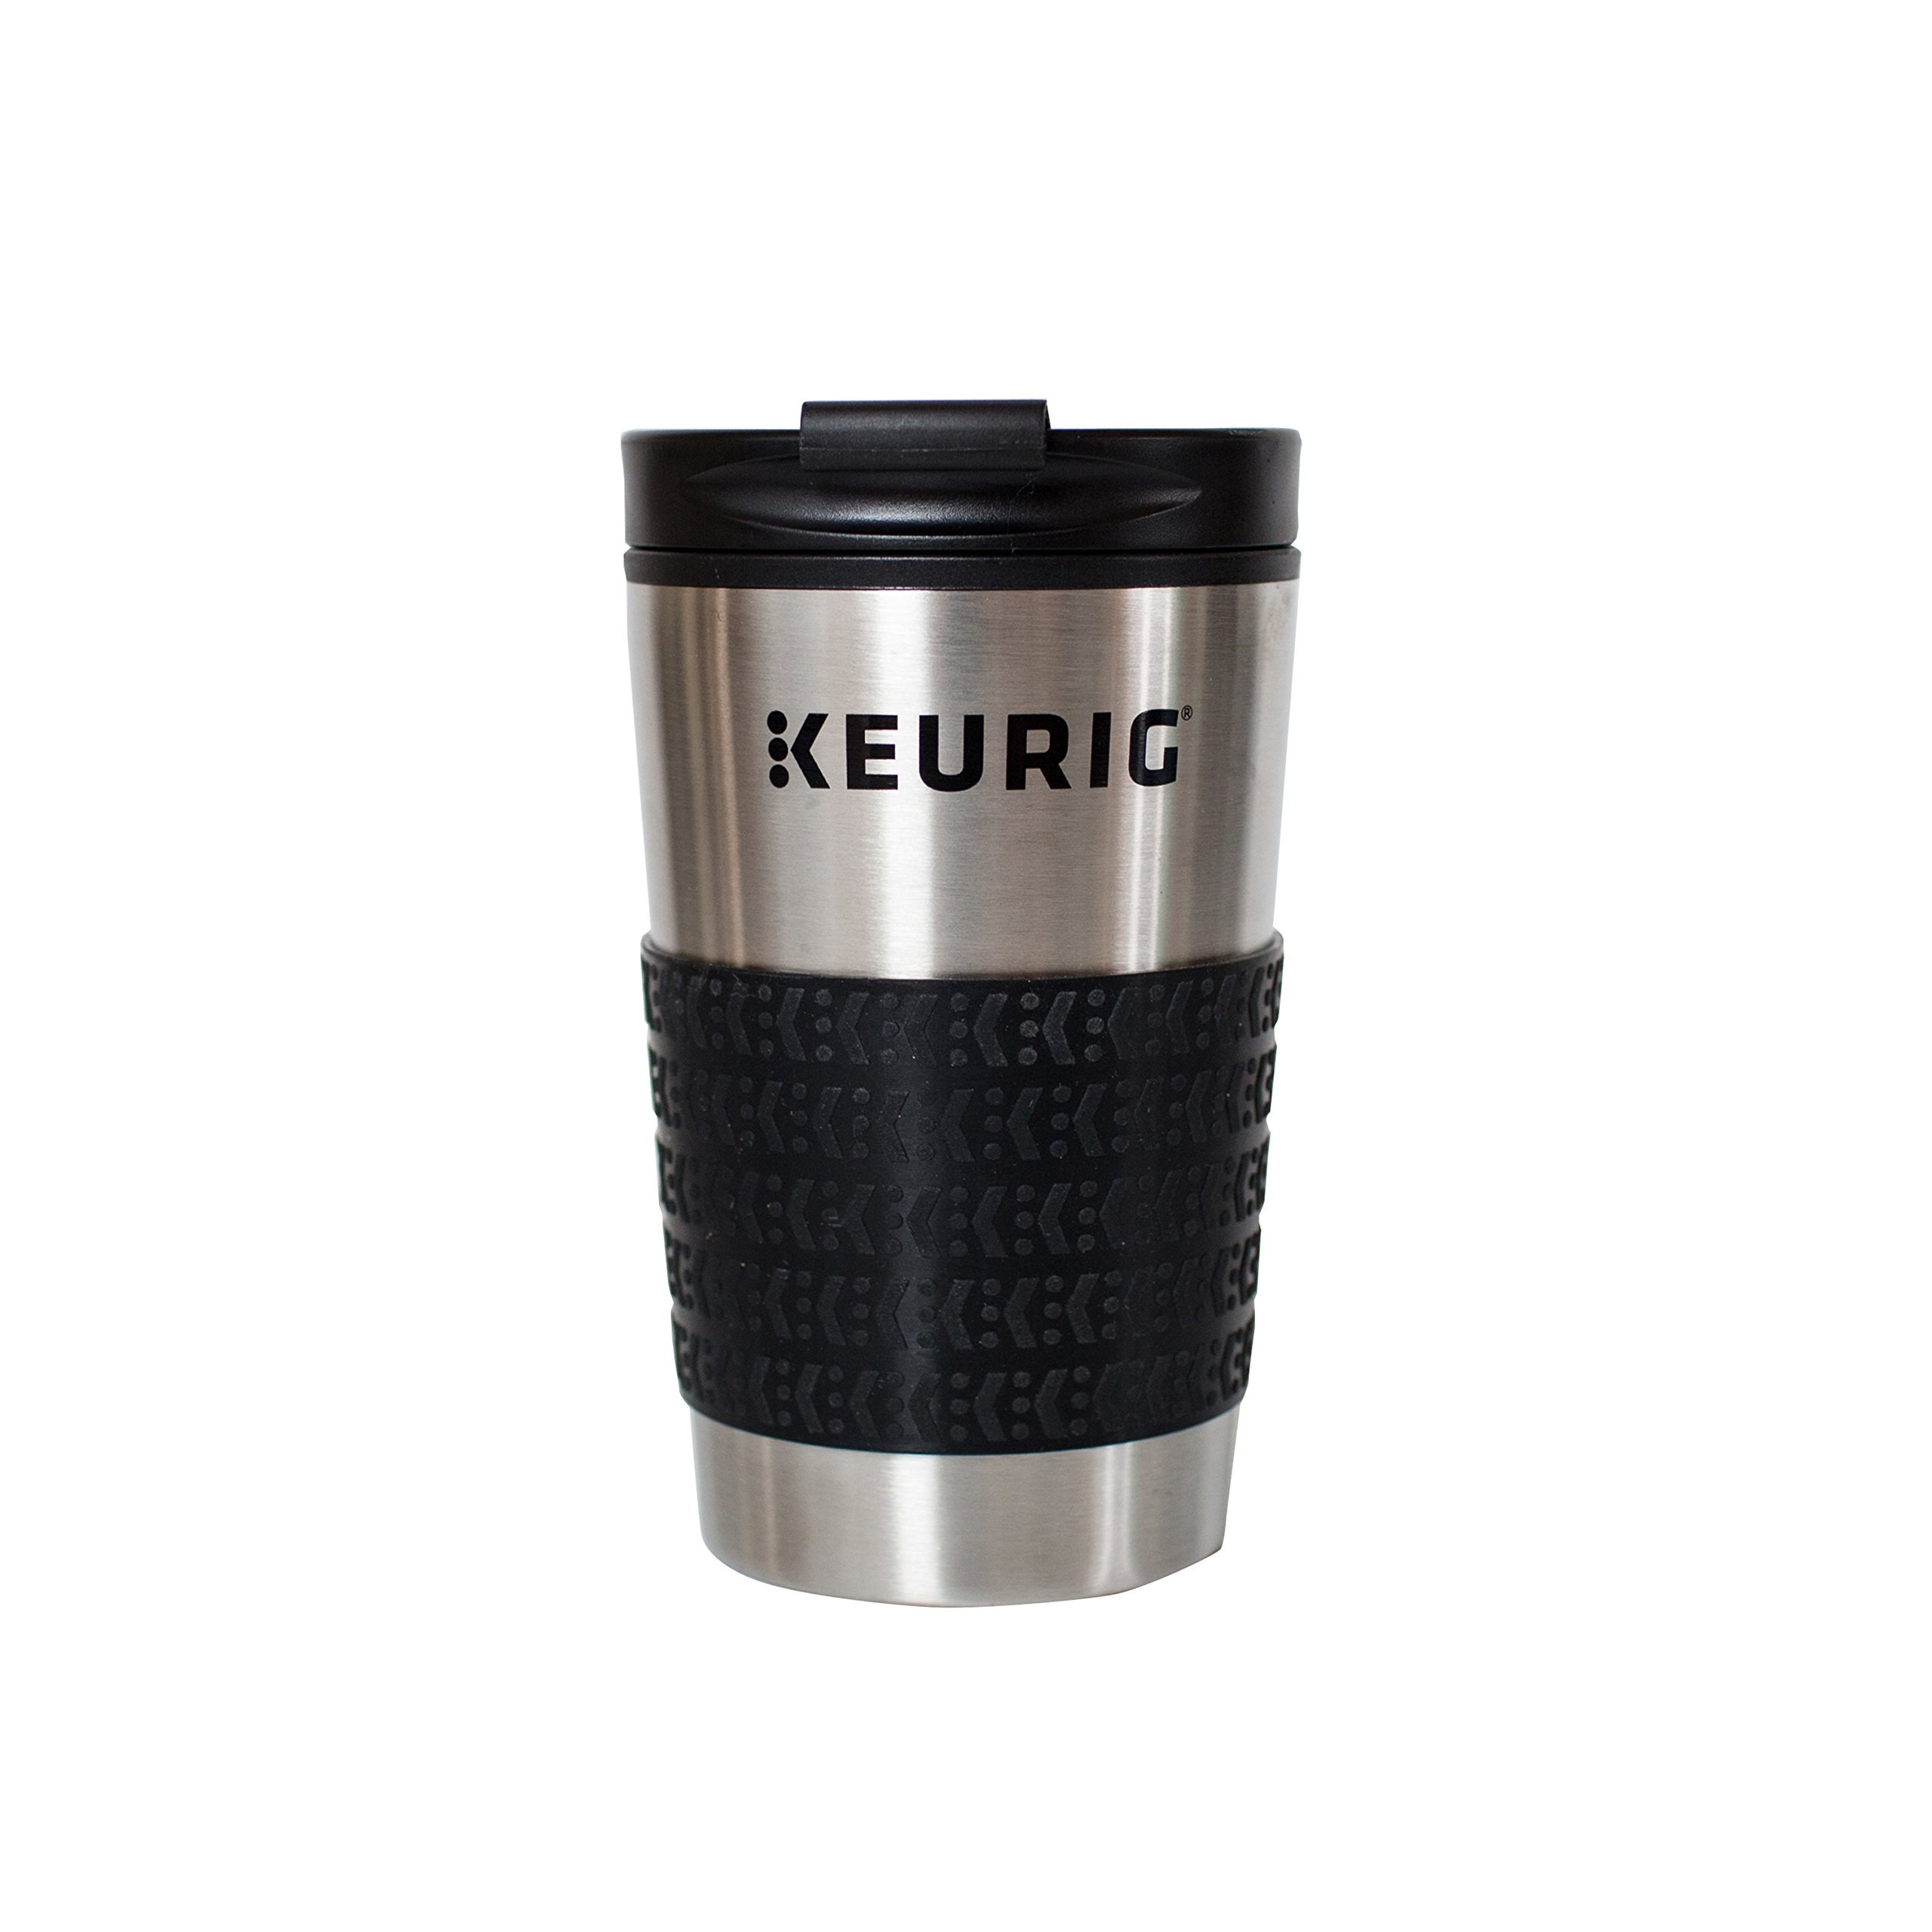 Keurig 12oz Stainless Steel Insulated Coffee Travel Mug, Fits Under Any Keurig K-Cup Pod Coffee Maker (including K-15/K-Mini), Silver by Keurig